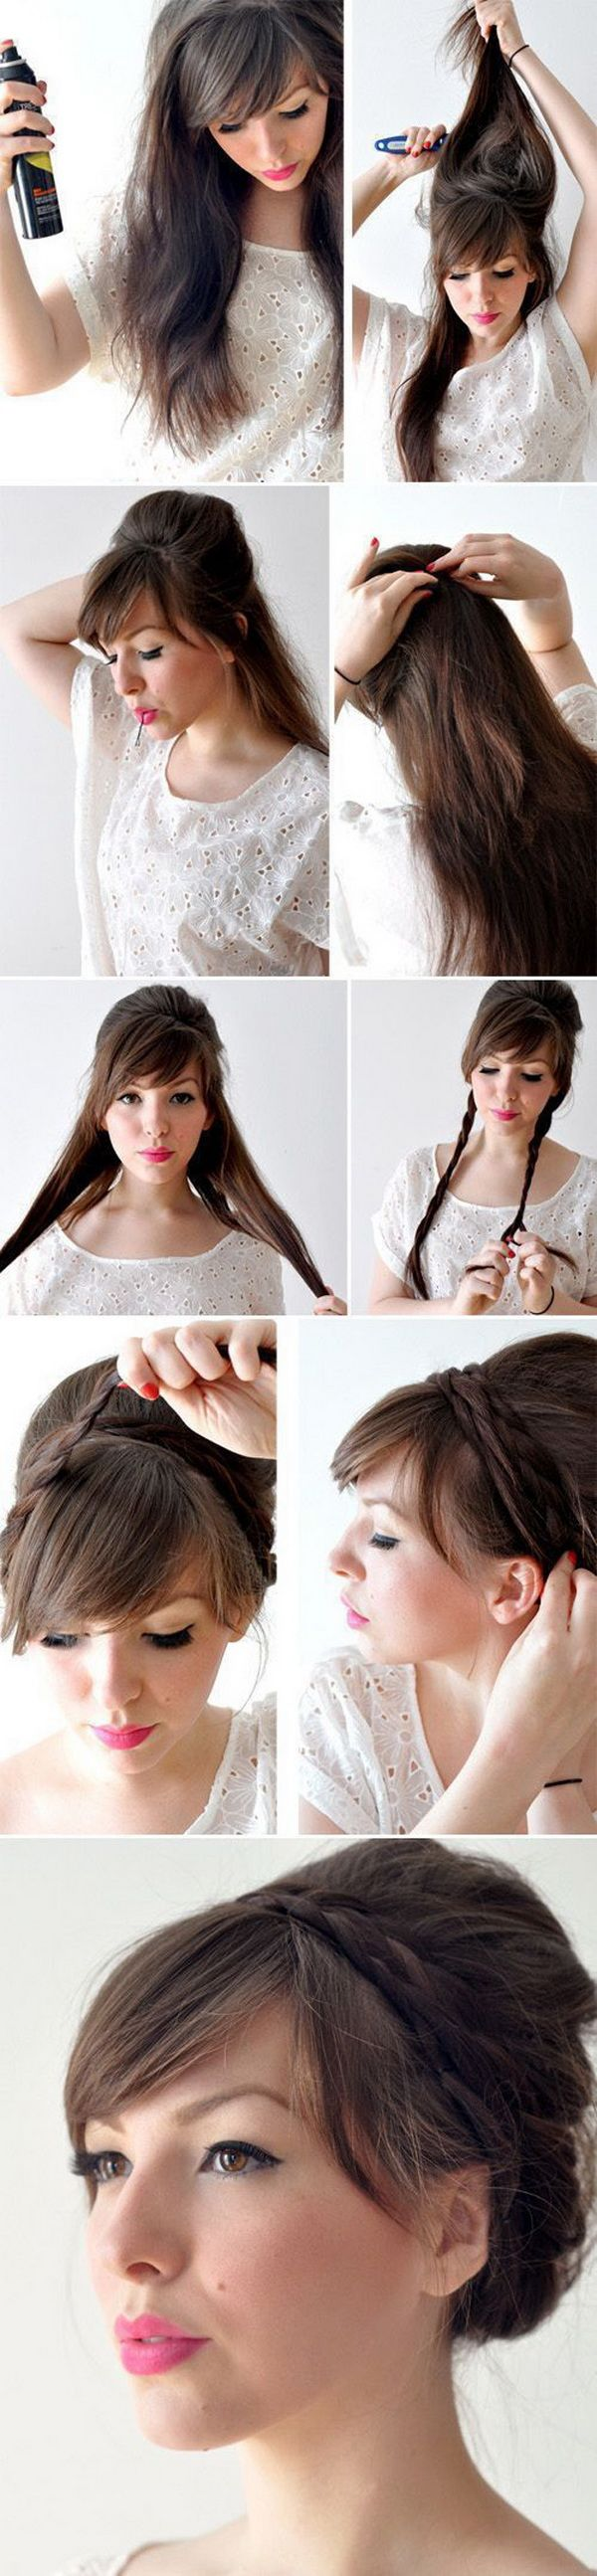 best hair styles images on pinterest hair ideas hairdos and